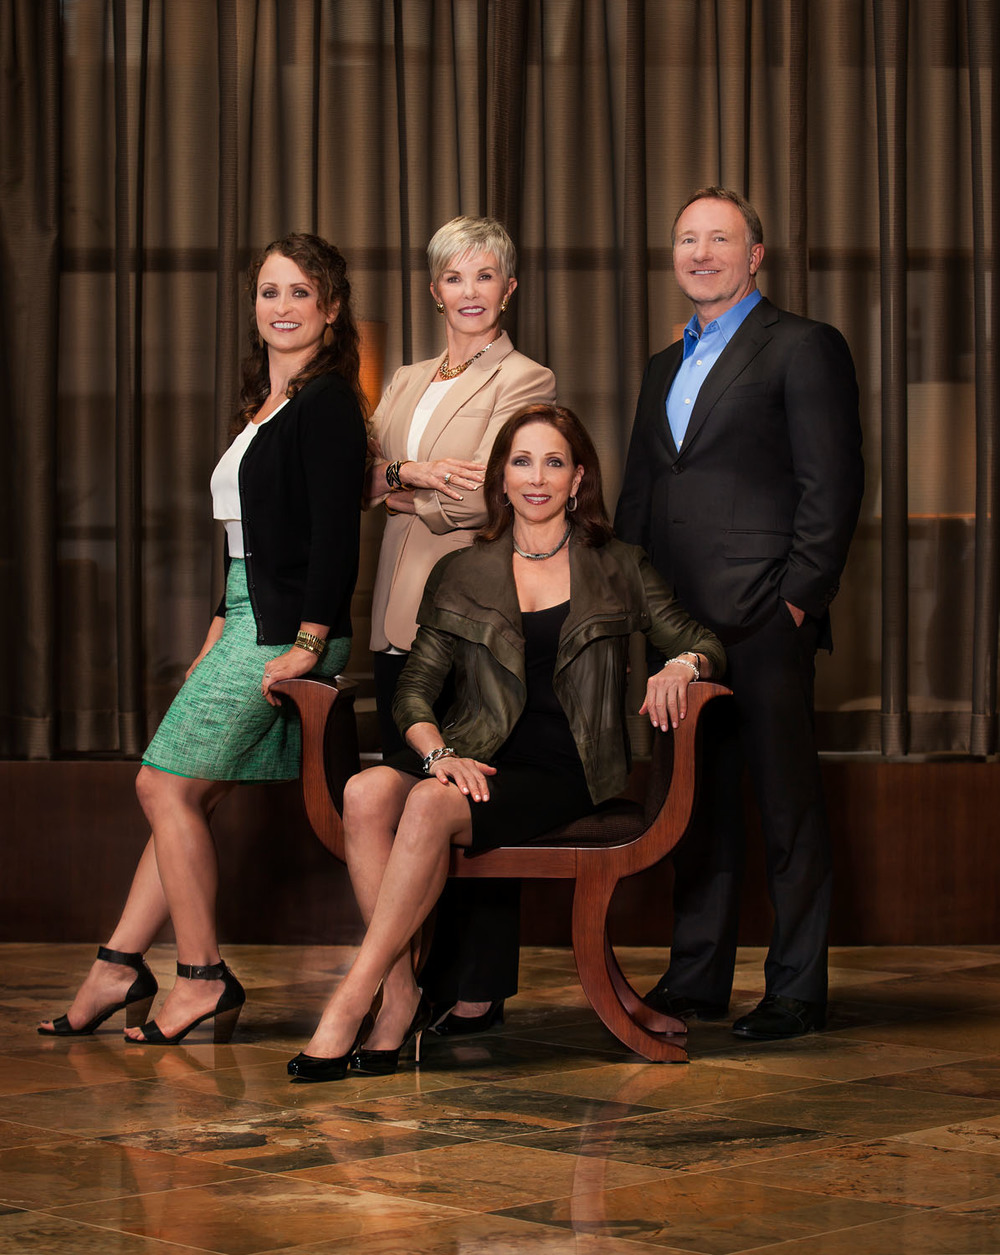 Group Portraits for Business Sacramento